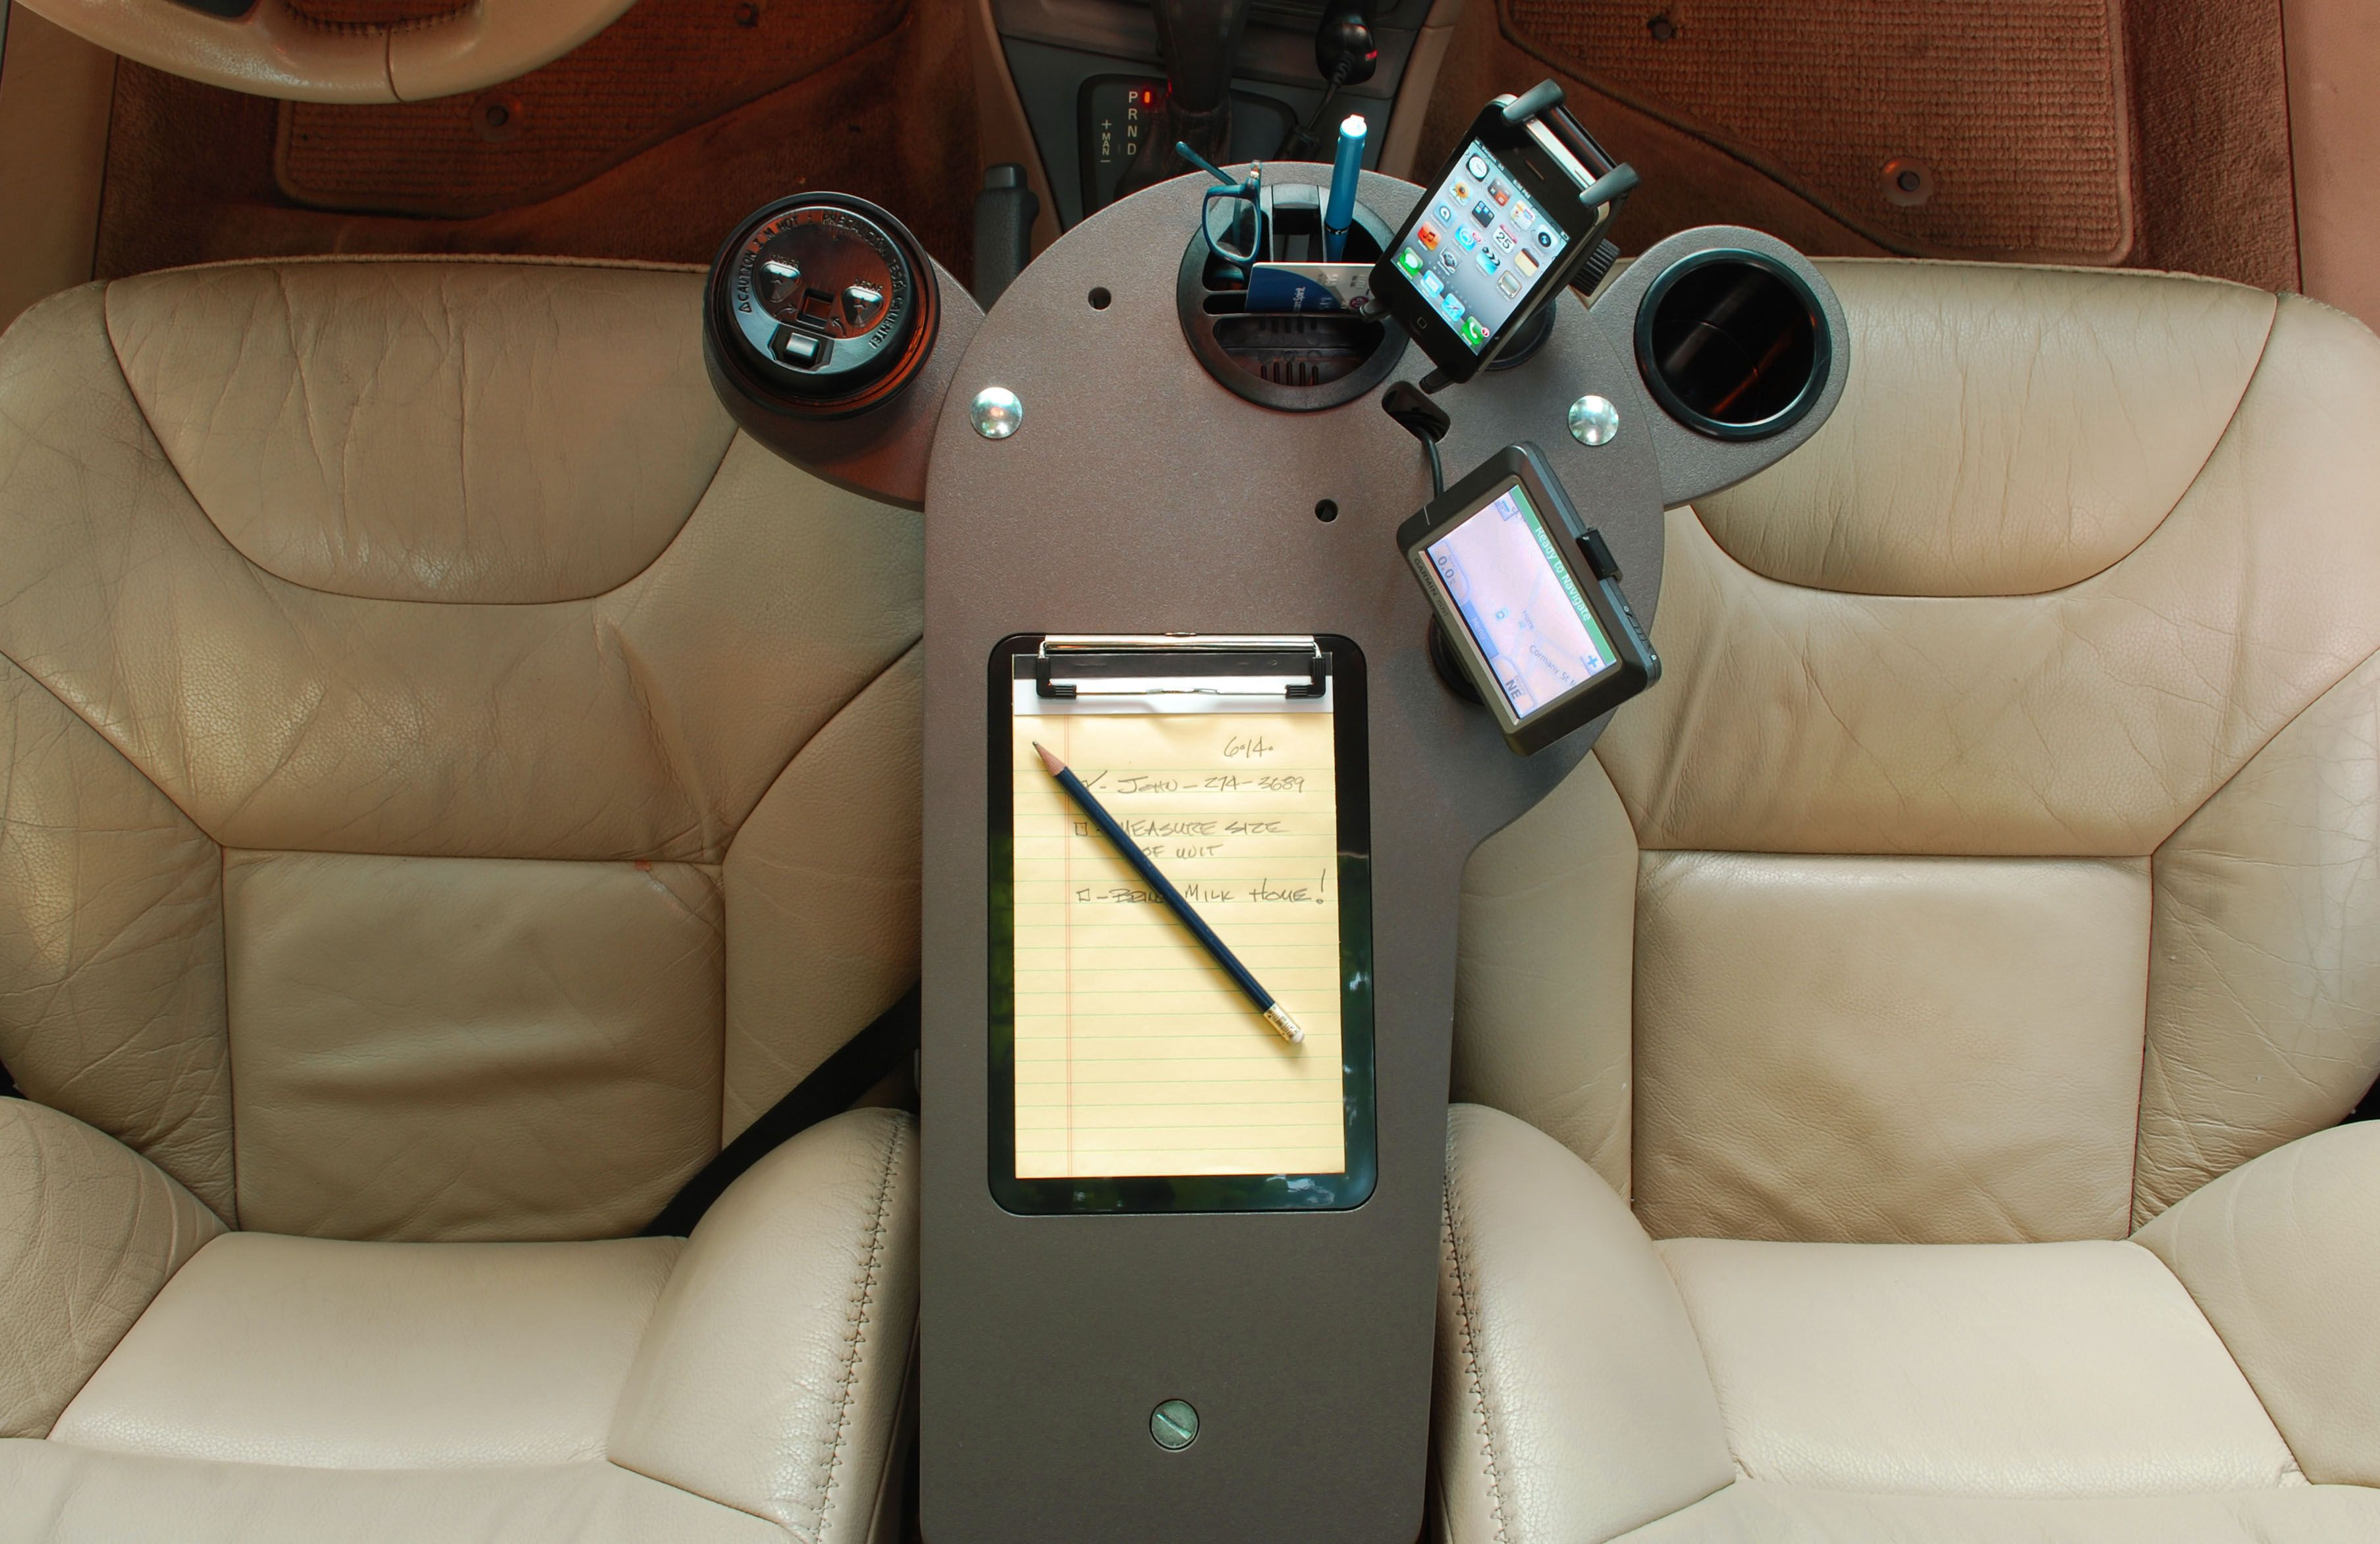 Journidock Is A Mobile Office And Portable Desk That Doesn T Take Up Your Pengers Seat